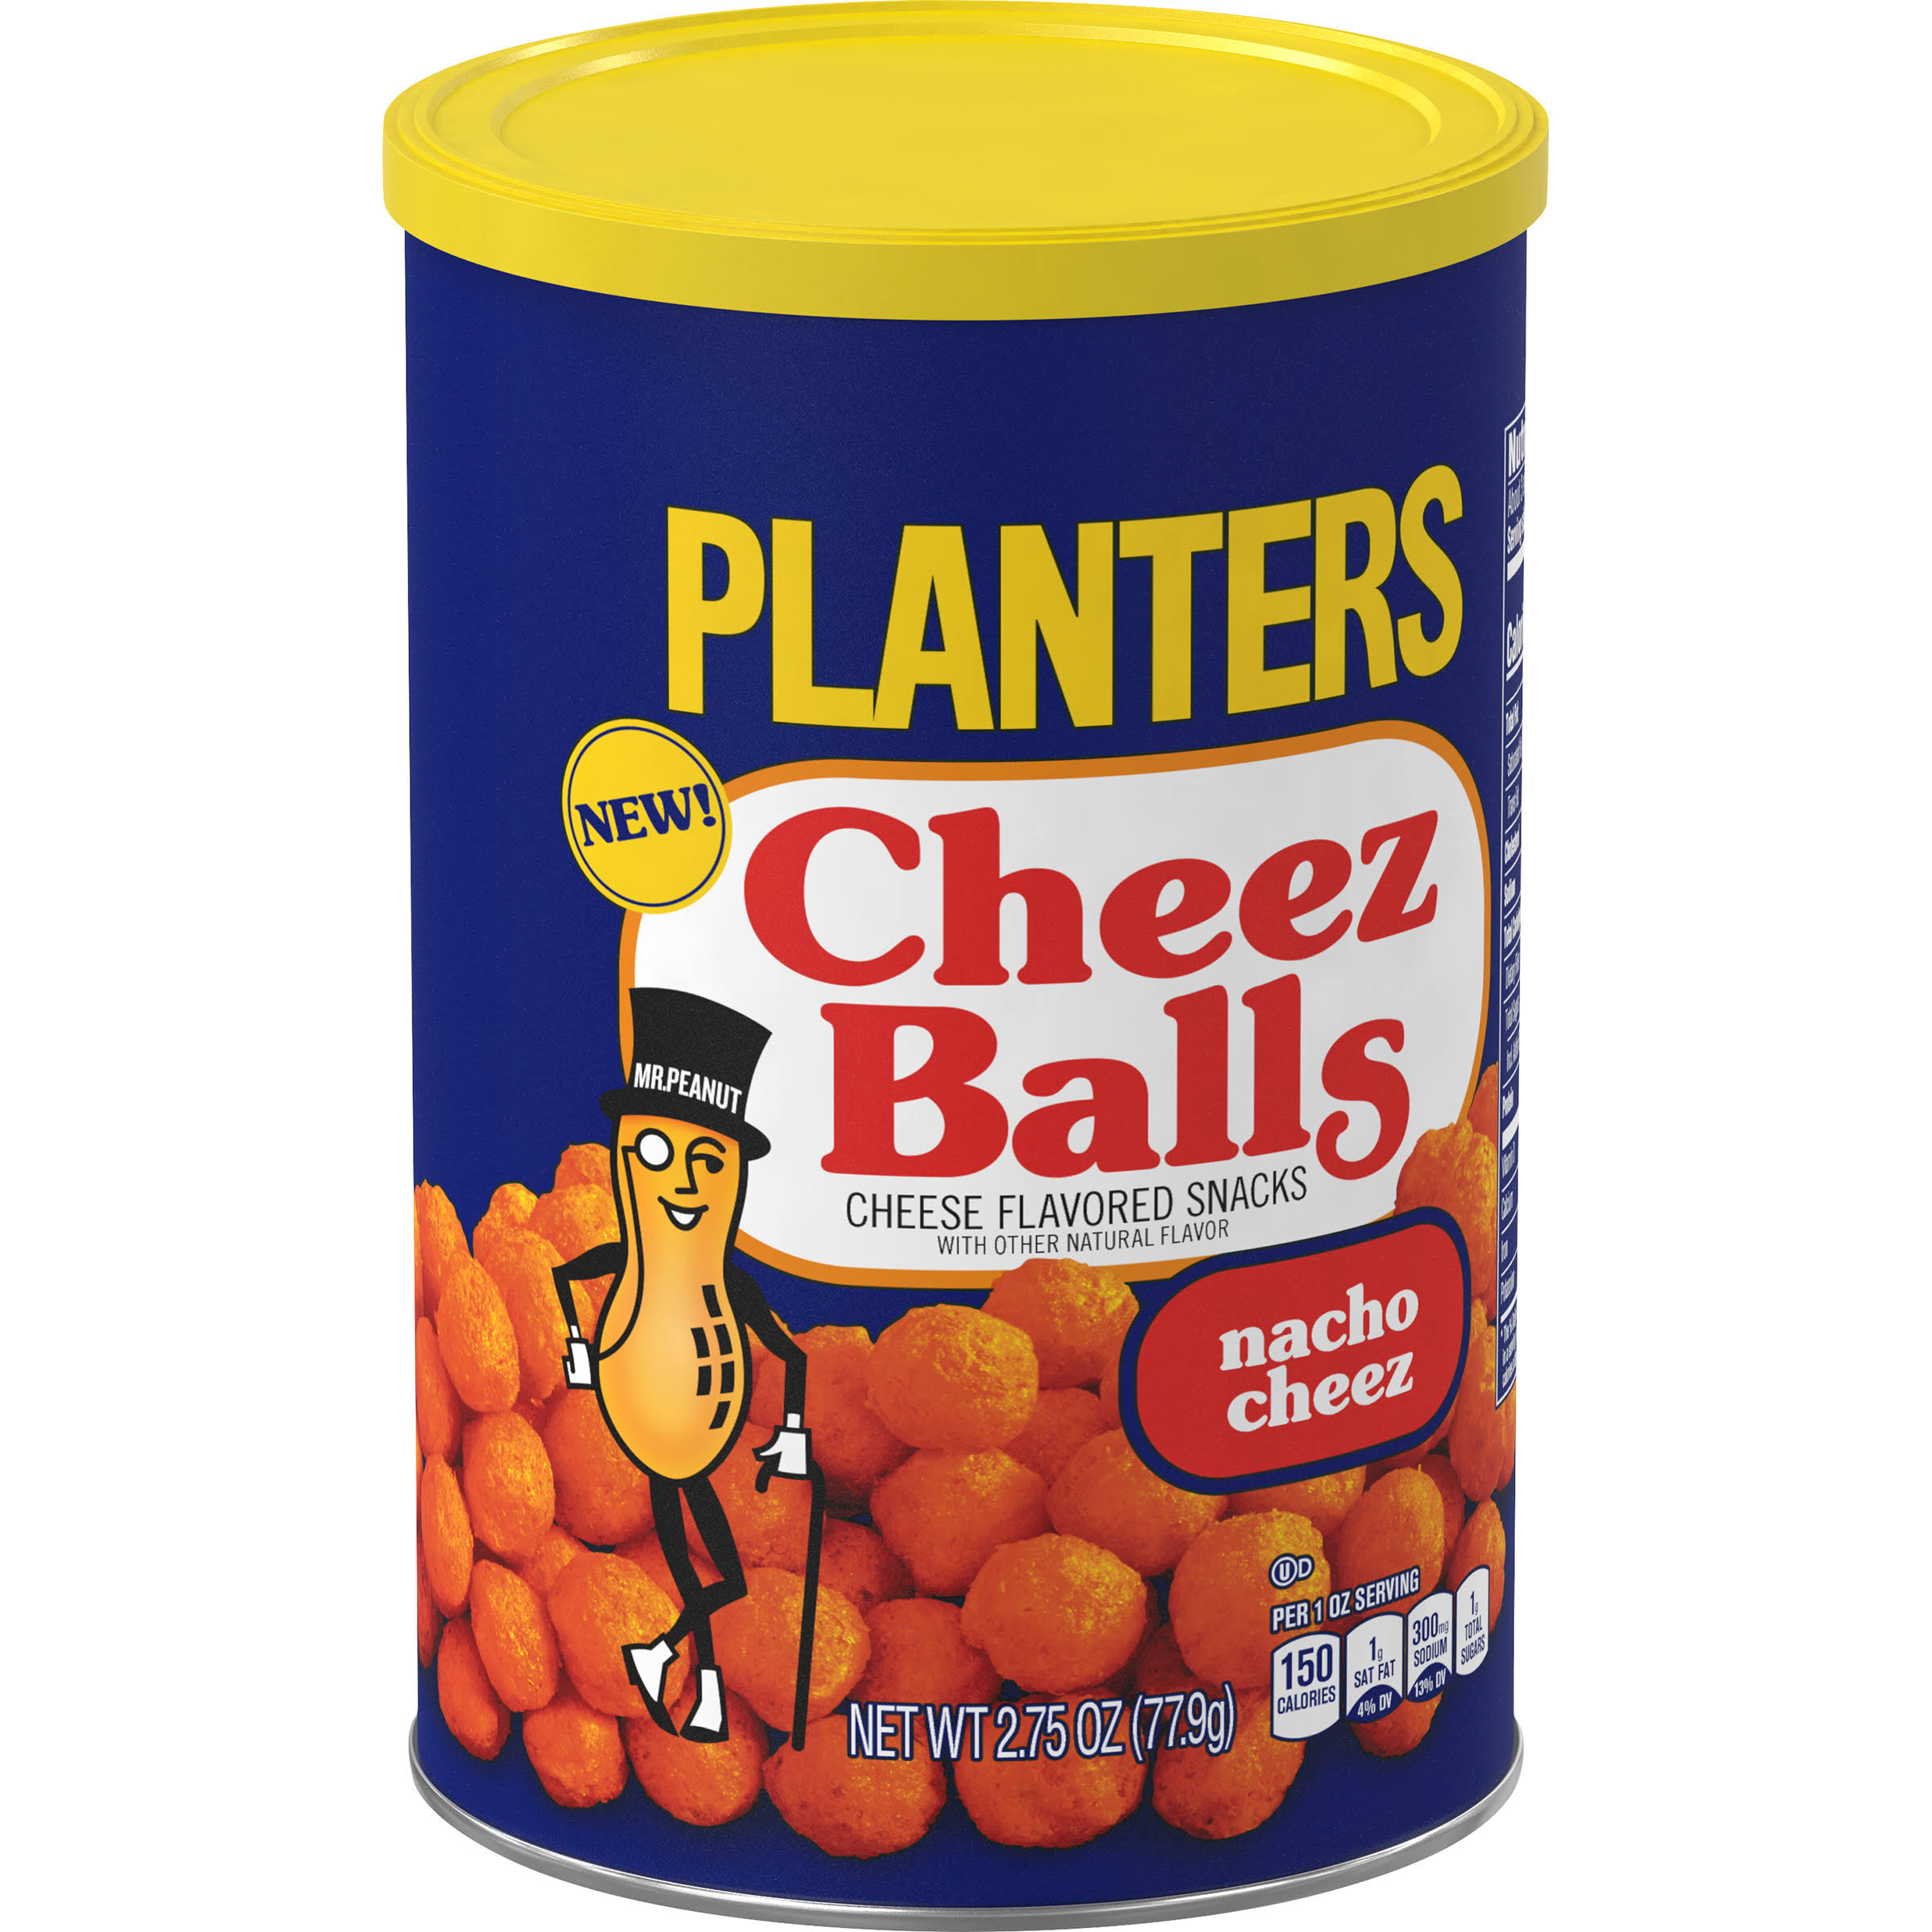 Planters Cheez Balls, Nacho Cheez - 2.75 oz